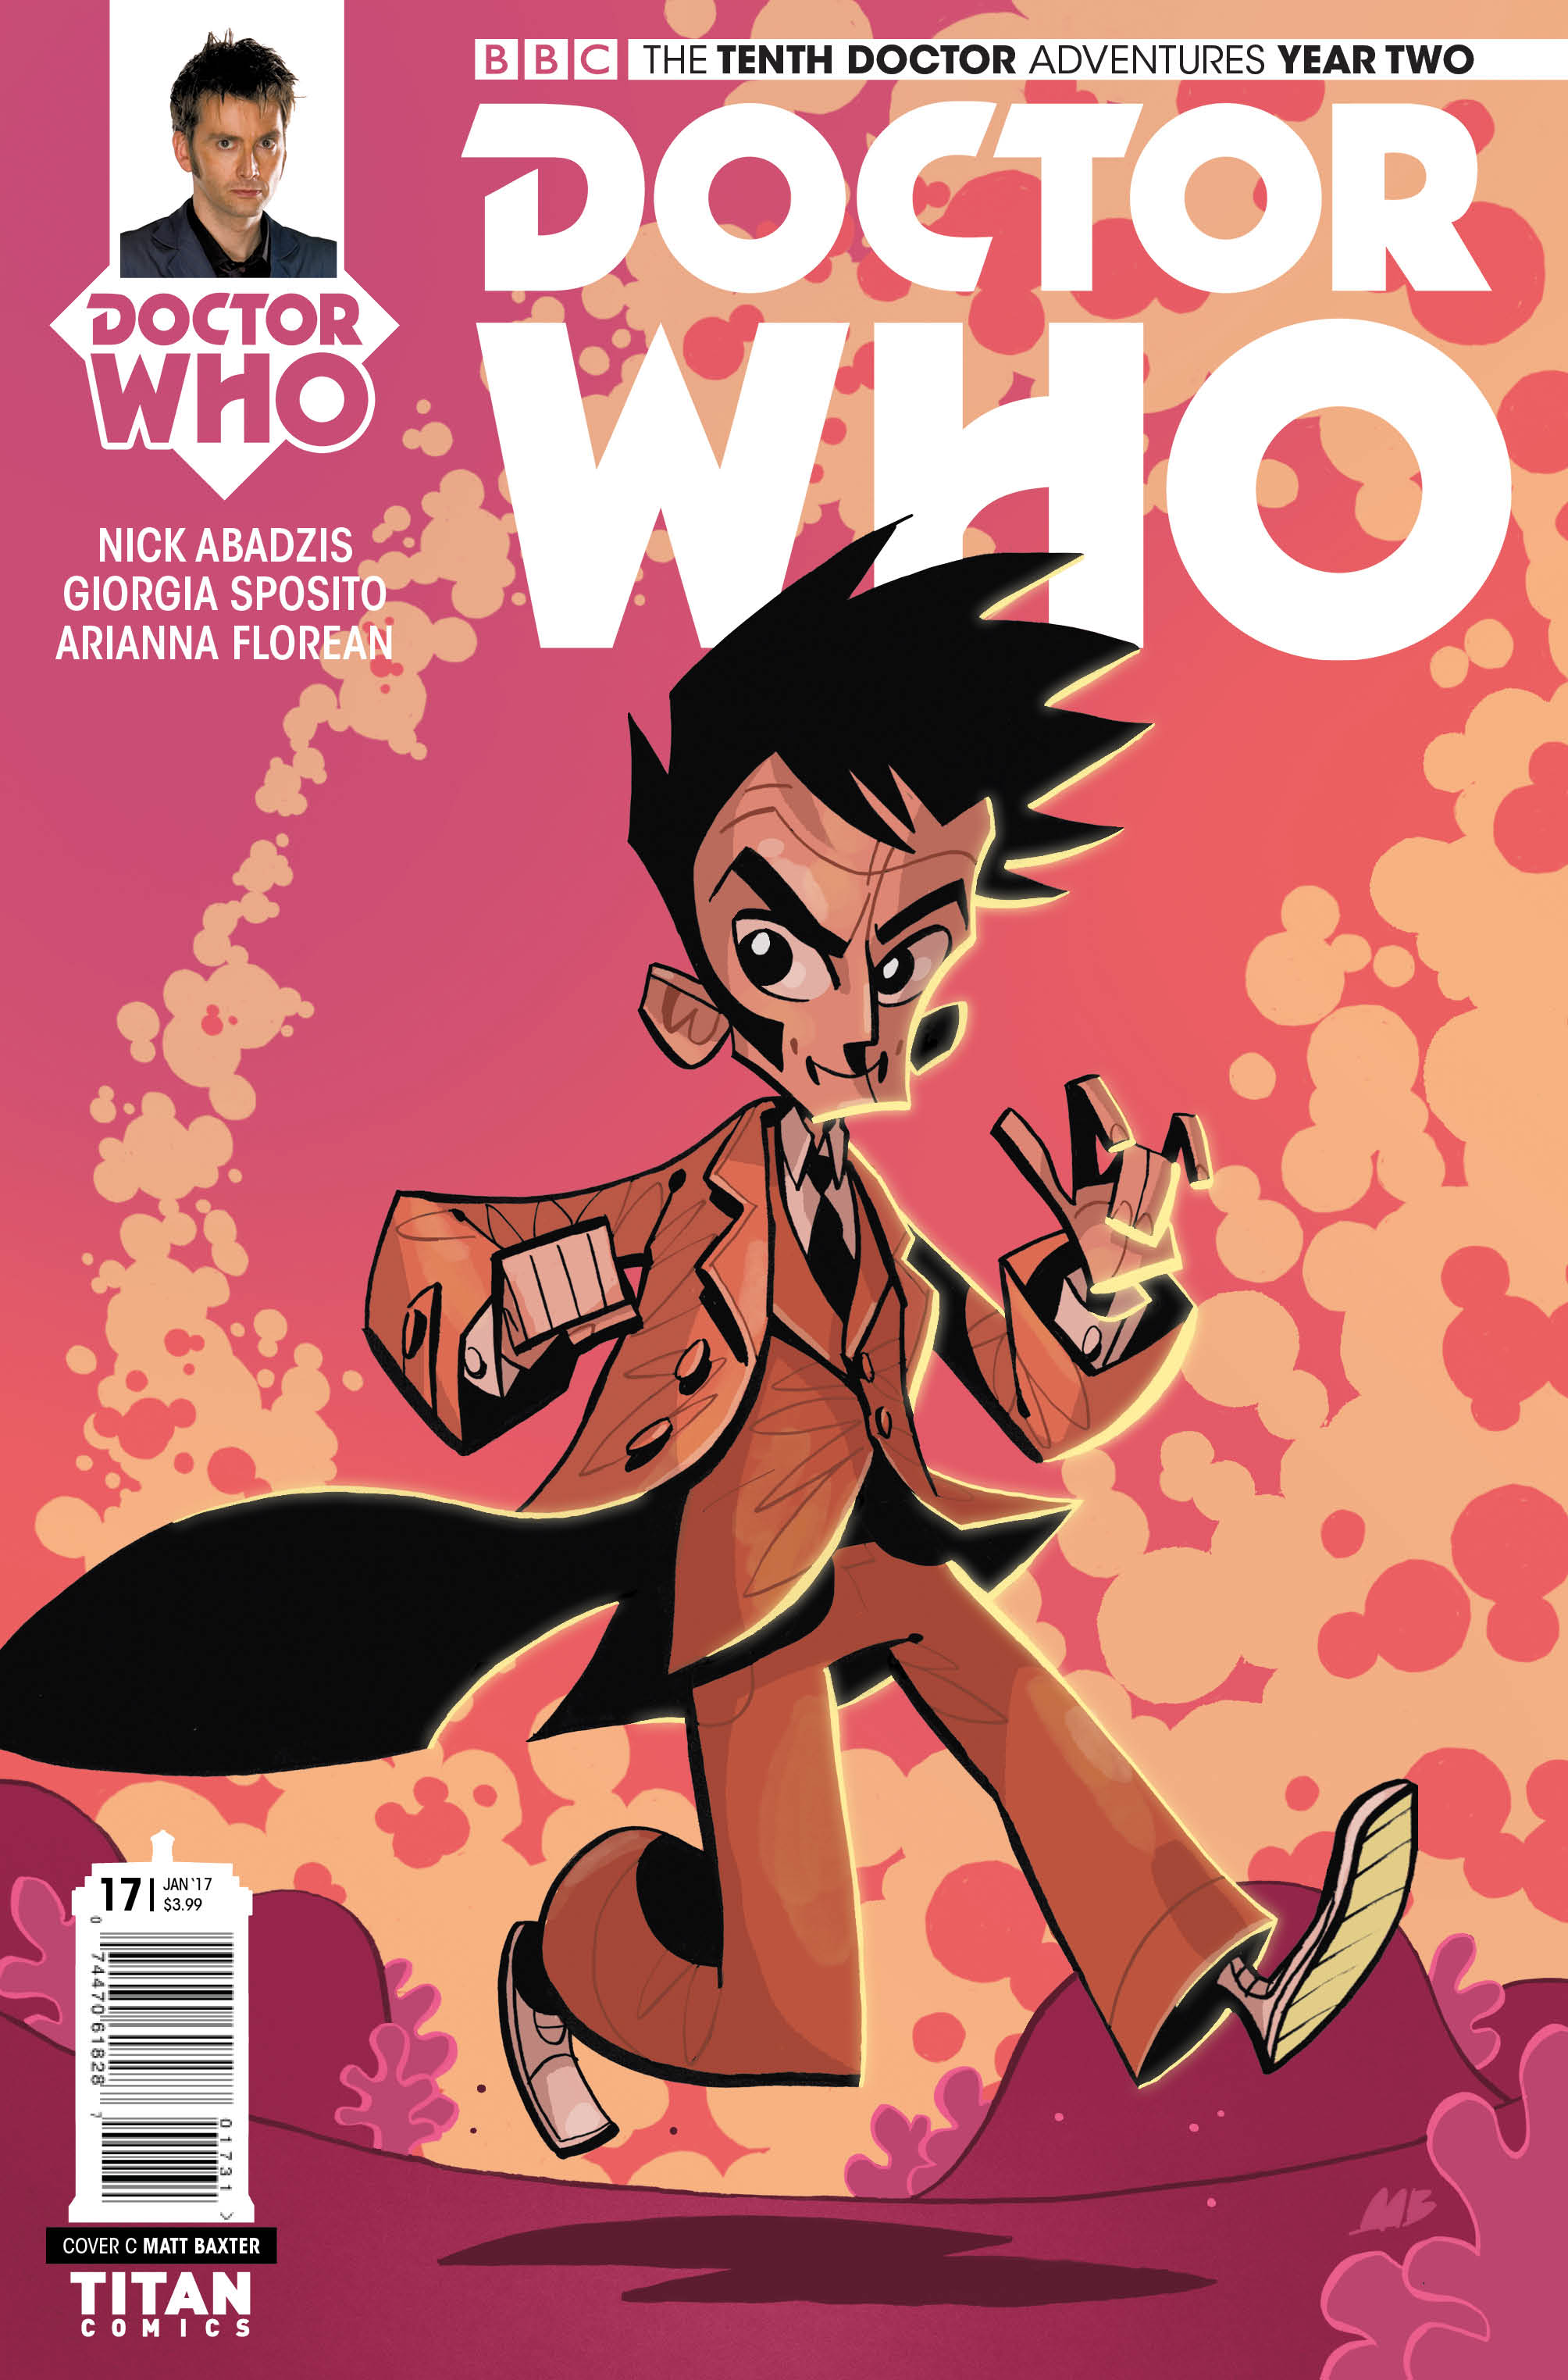 TENTH DOCTOR #2.17 Cover_C_Matt_Baxter (Credit: Titan)